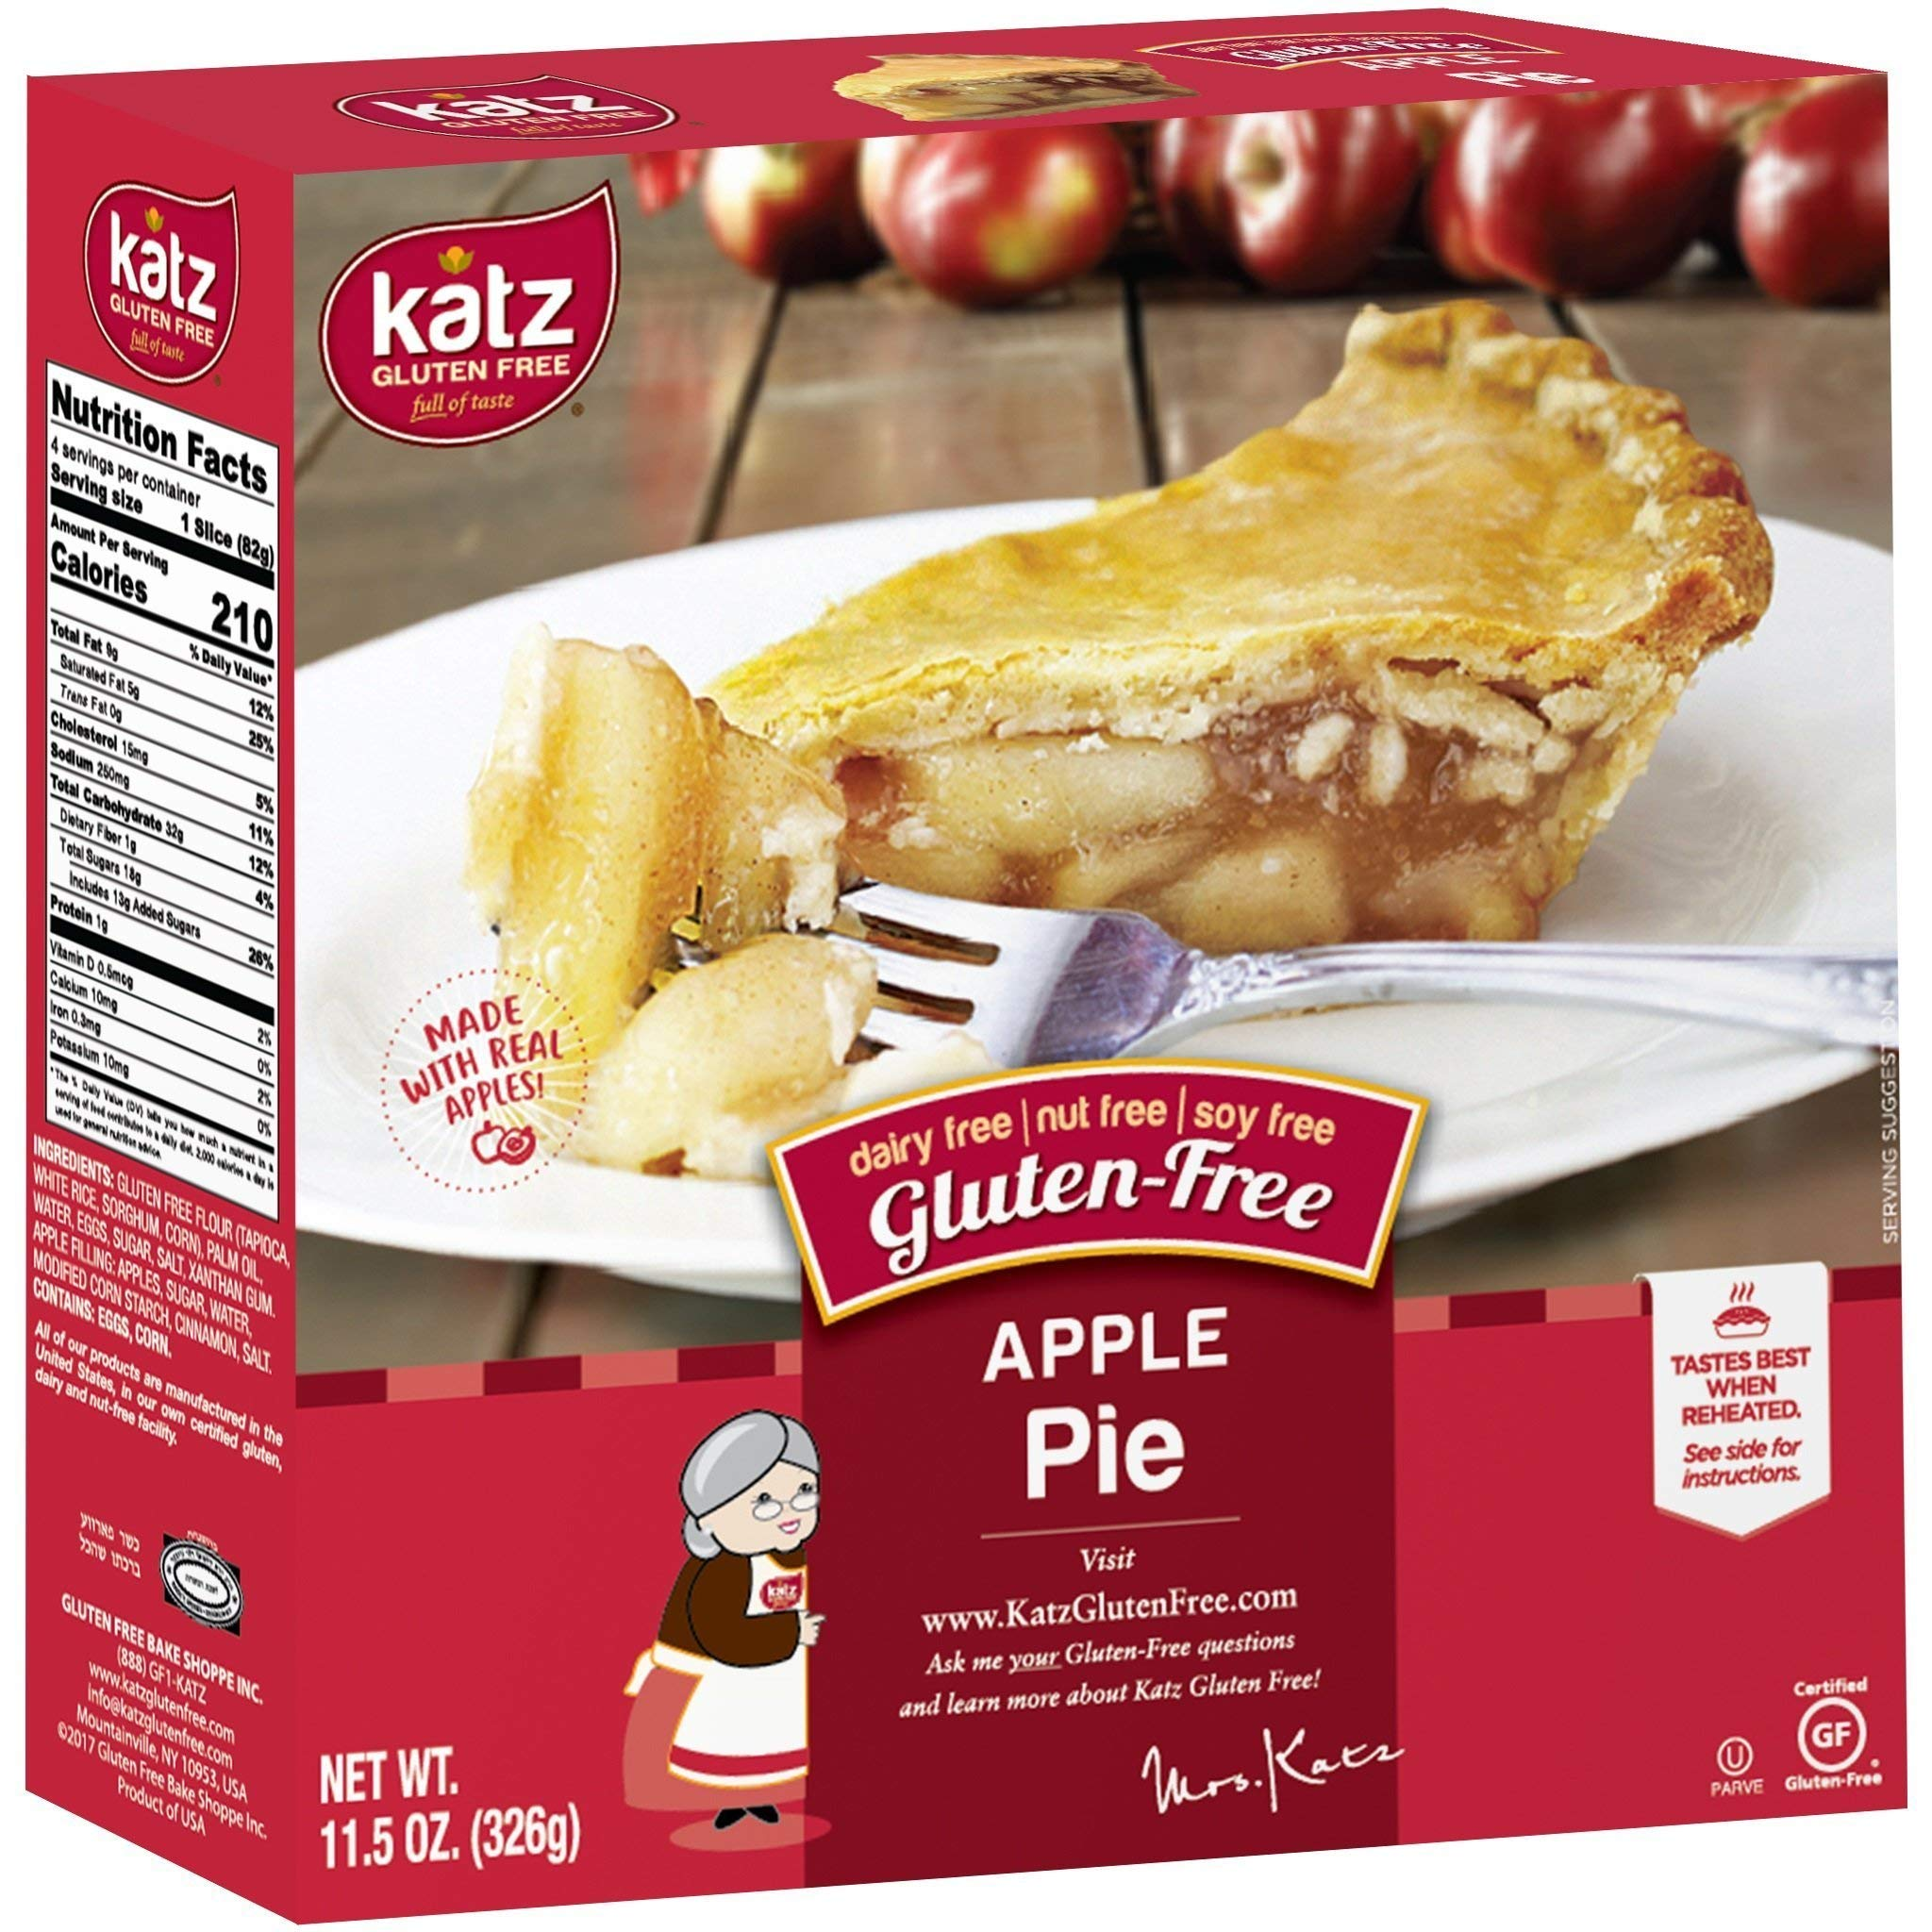 Katz Gluten Free Personal Size Apple Pie | Dairy, Nut, Soy and Gluten Free | Kosher (6 Packs of 1 Pie, 11.5 Ounce Each) by Katz Gluten Free